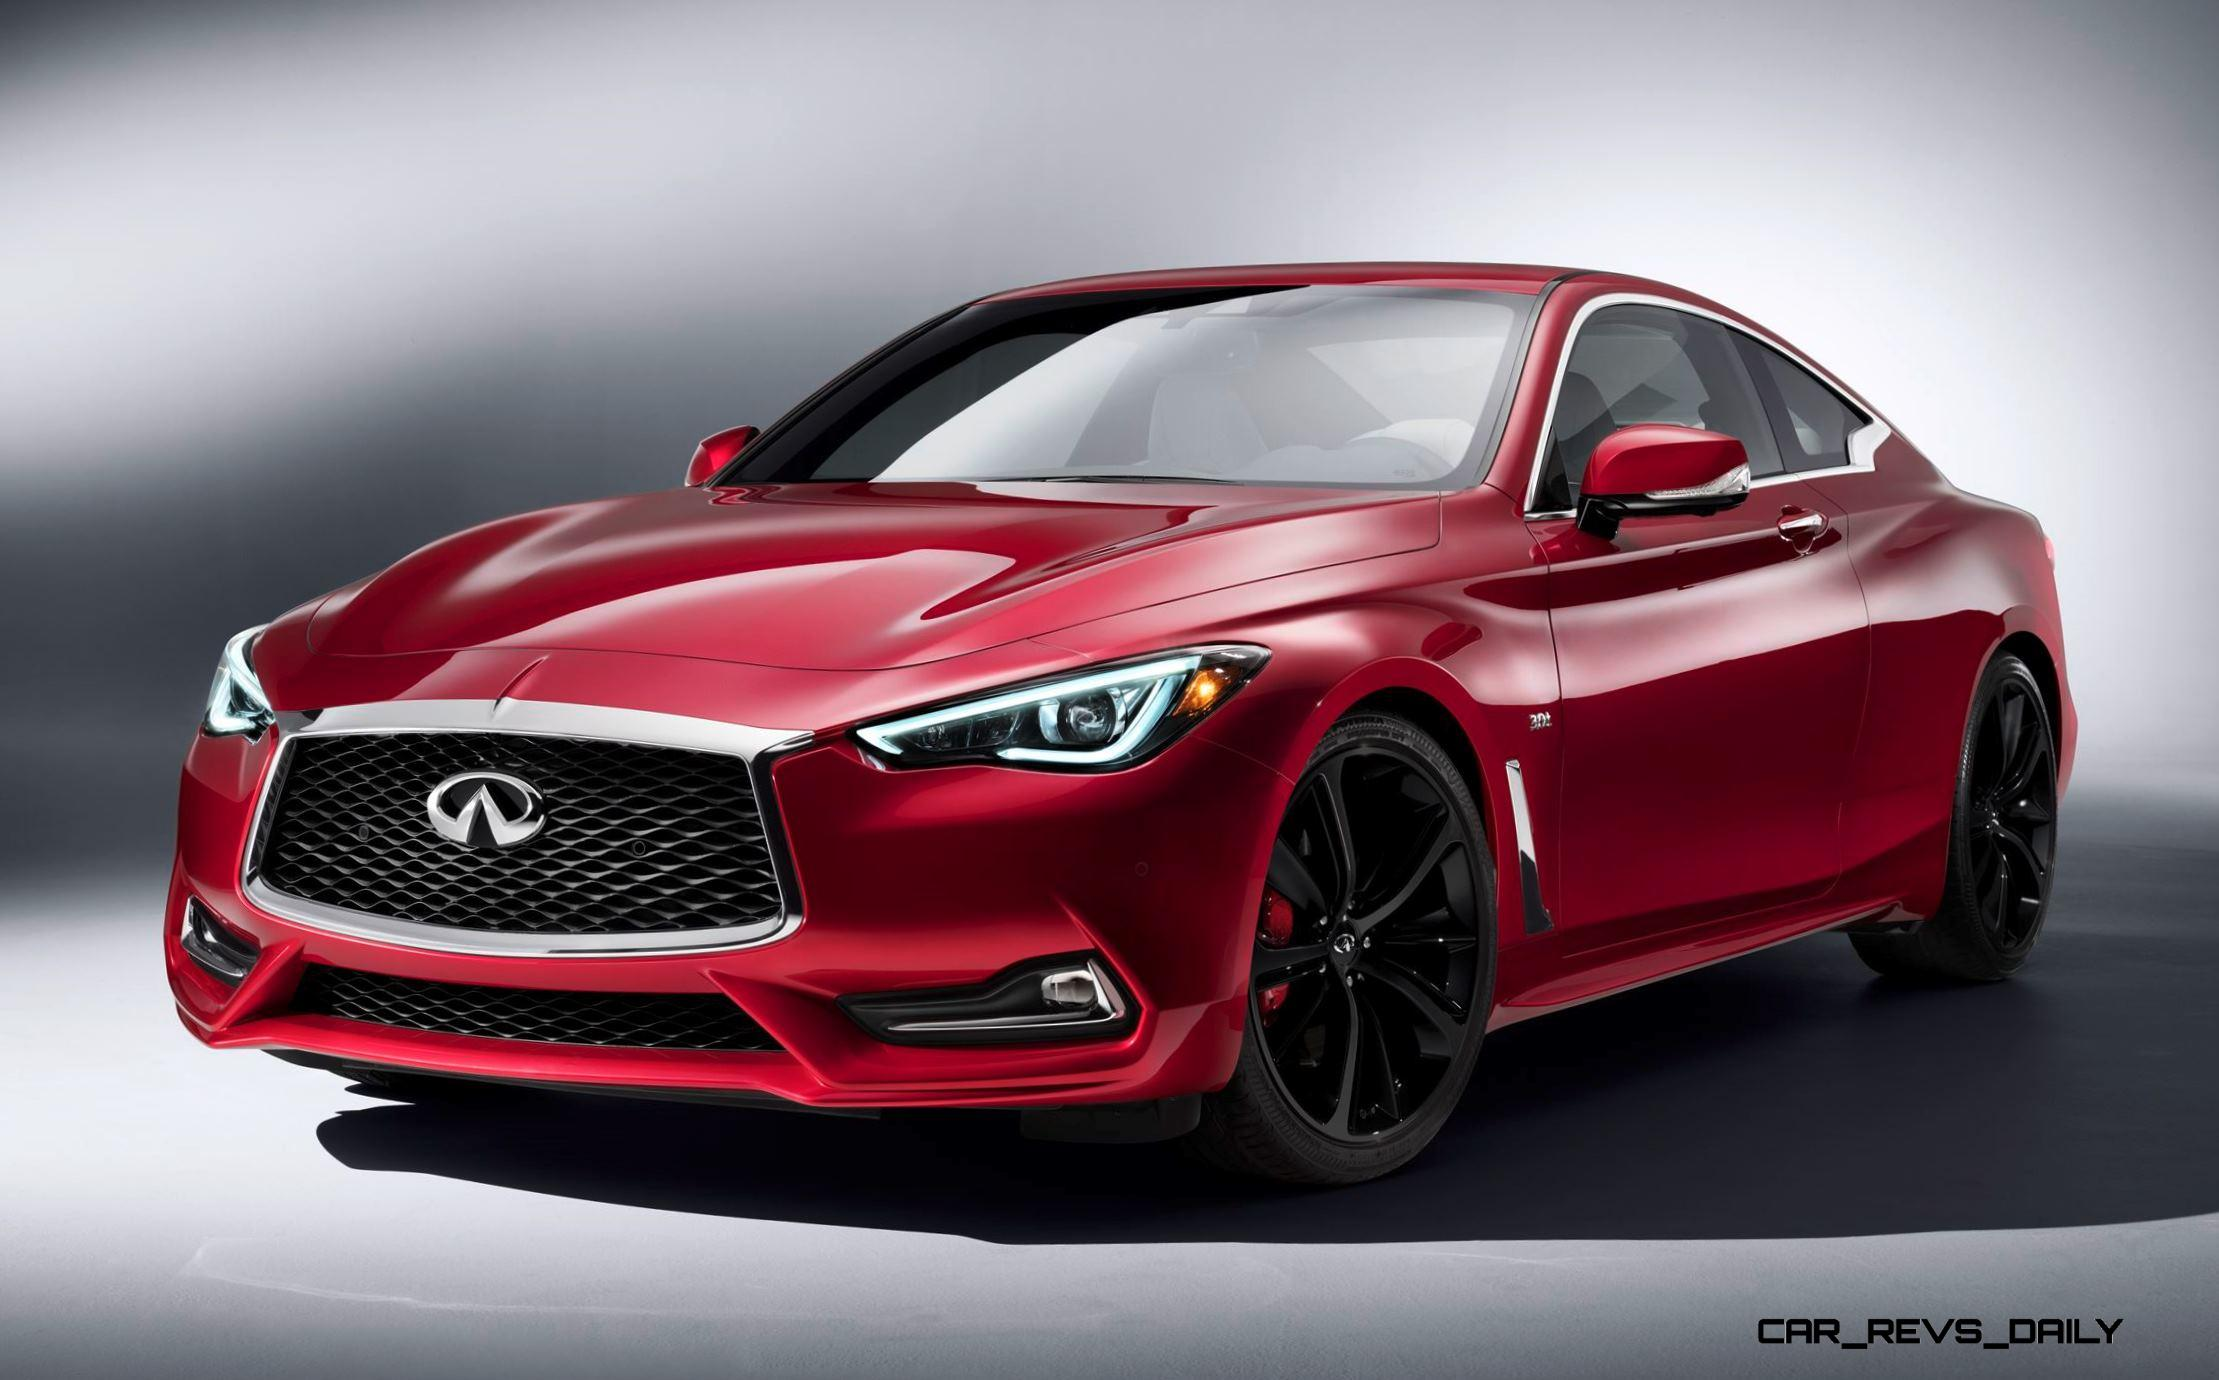 4 8s, 400hp 2017 infiniti q60 3 engines and sexy design swagger 2005 Freightliner Wiring Diagram q60 infiniti wiring diagram 2004 Infiniti G35 Sedan Wiring Diagram Infiniti Transfer Case Infiniti Parts Diagram